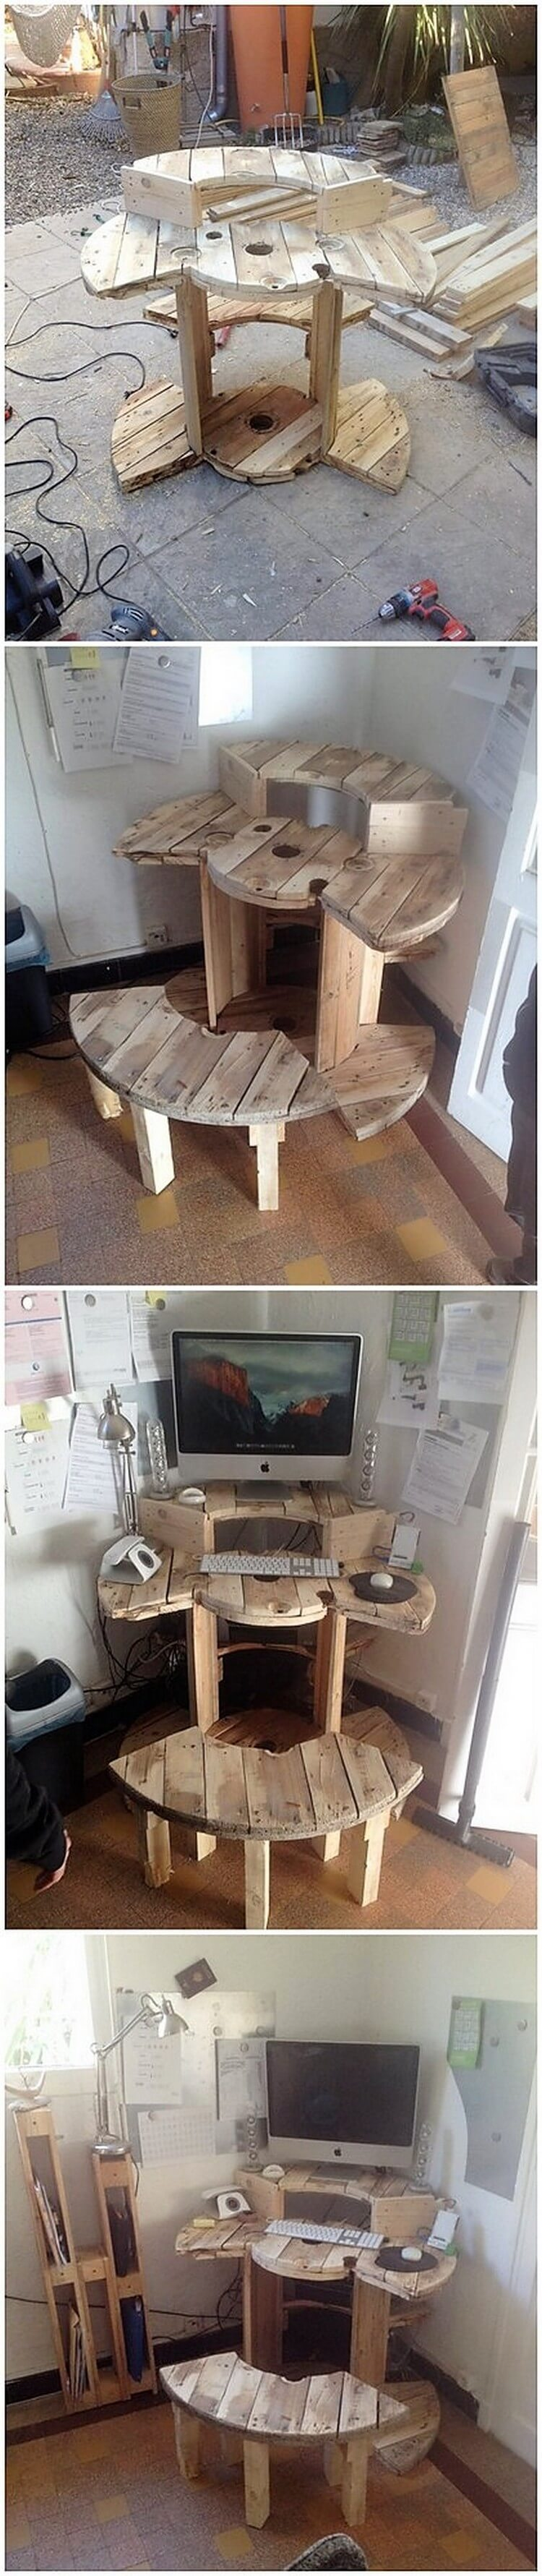 Pallet Computer Table and Bench